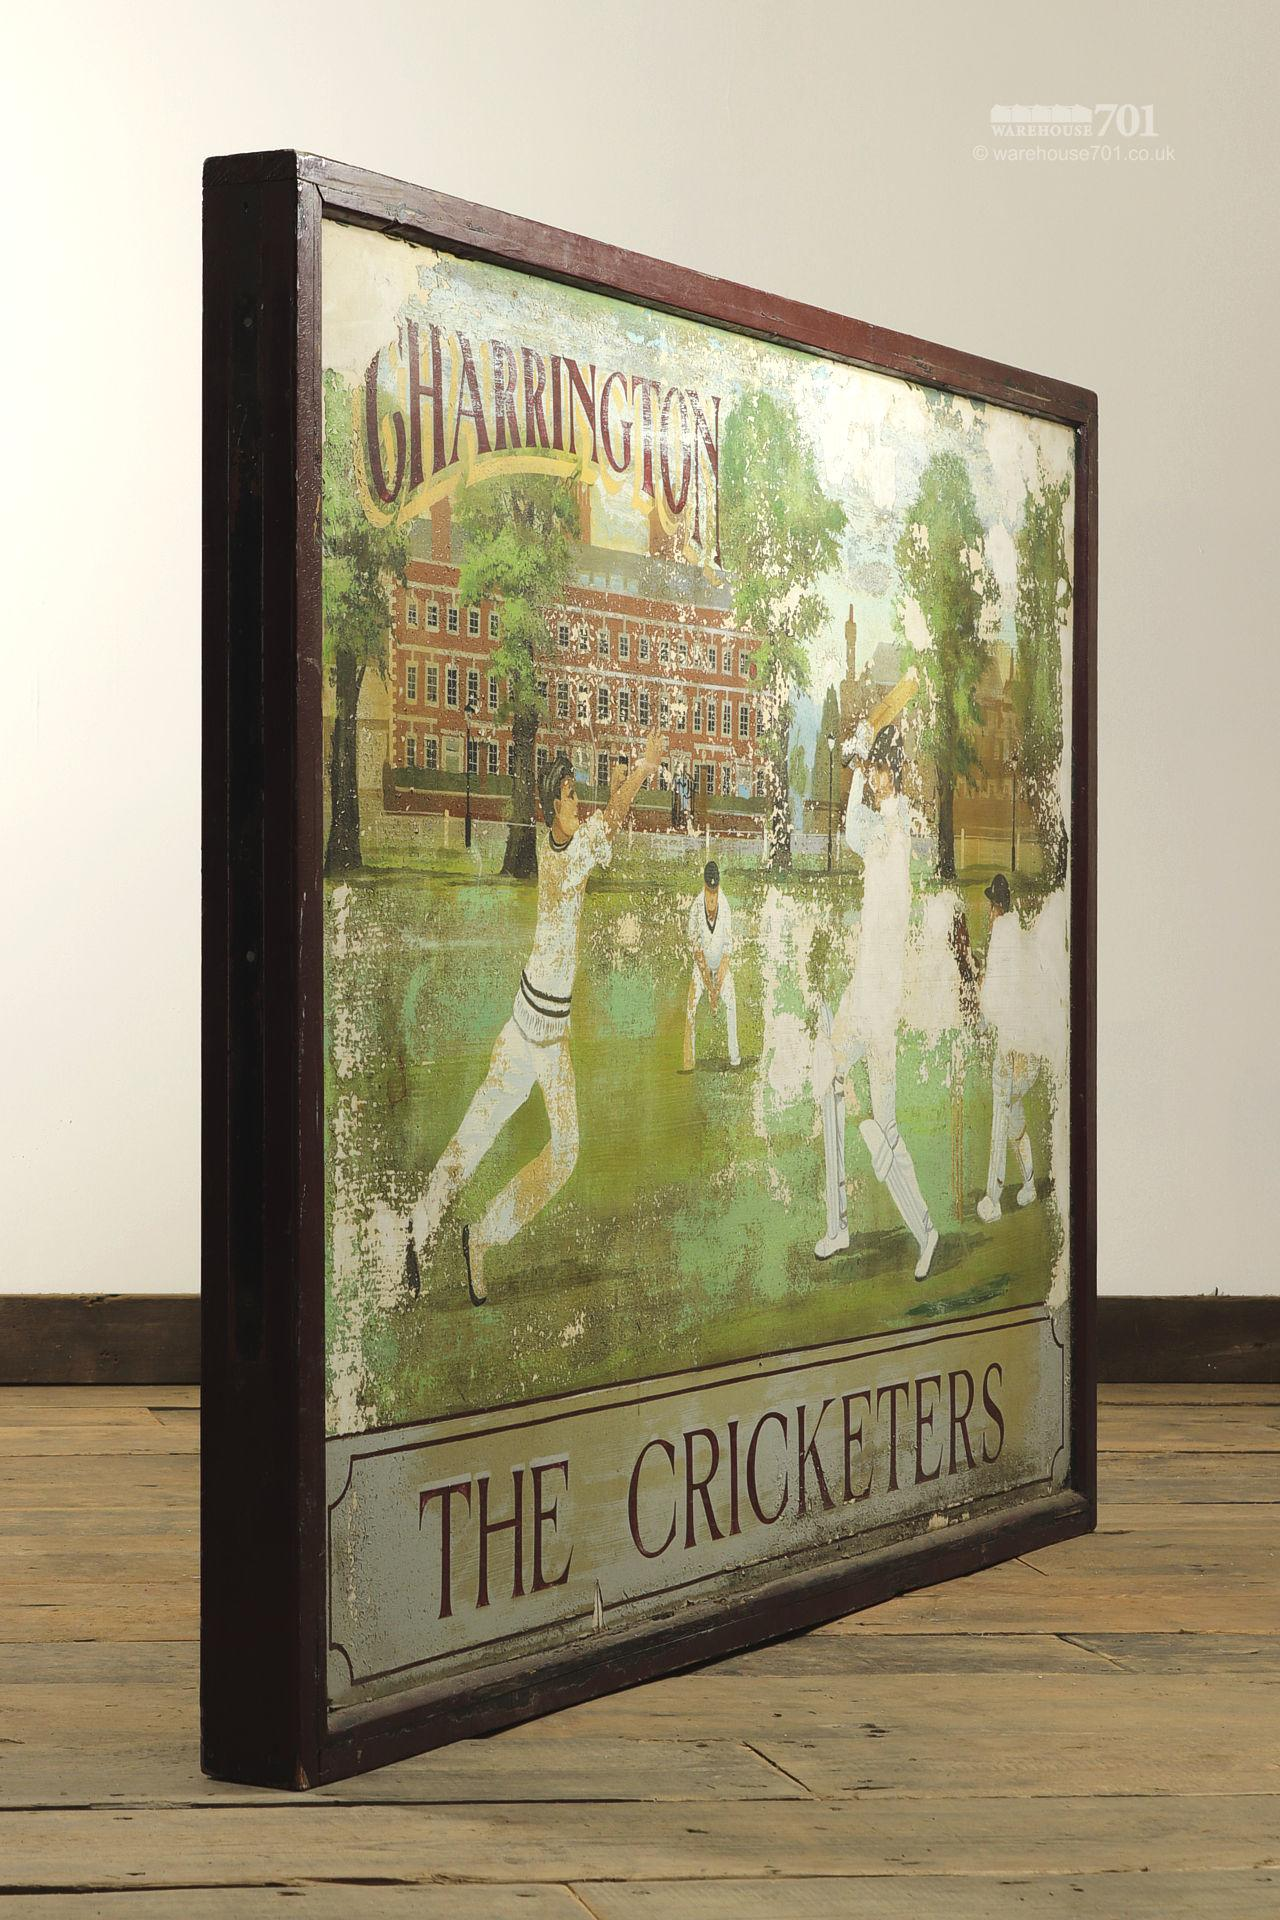 Salvaged Cricketers Double Sided Pub Sign #7